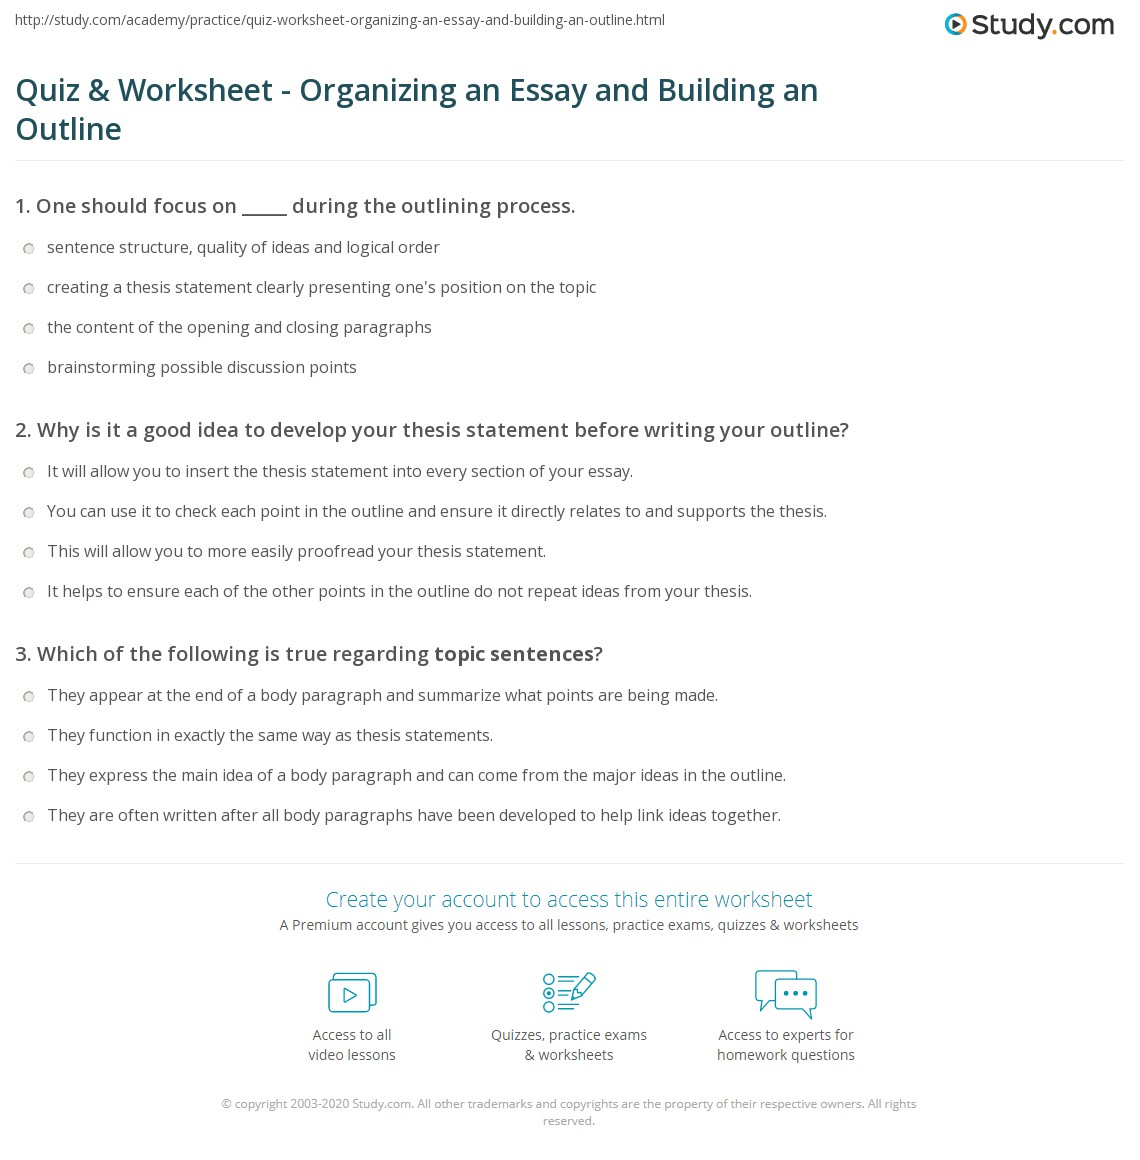 Argument Essay Paper Outline  Persuasive Essay Thesis Examples also Essay Papers Quiz  Worksheet  Organizing An Essay And Building An  Thesis Statement In Essay